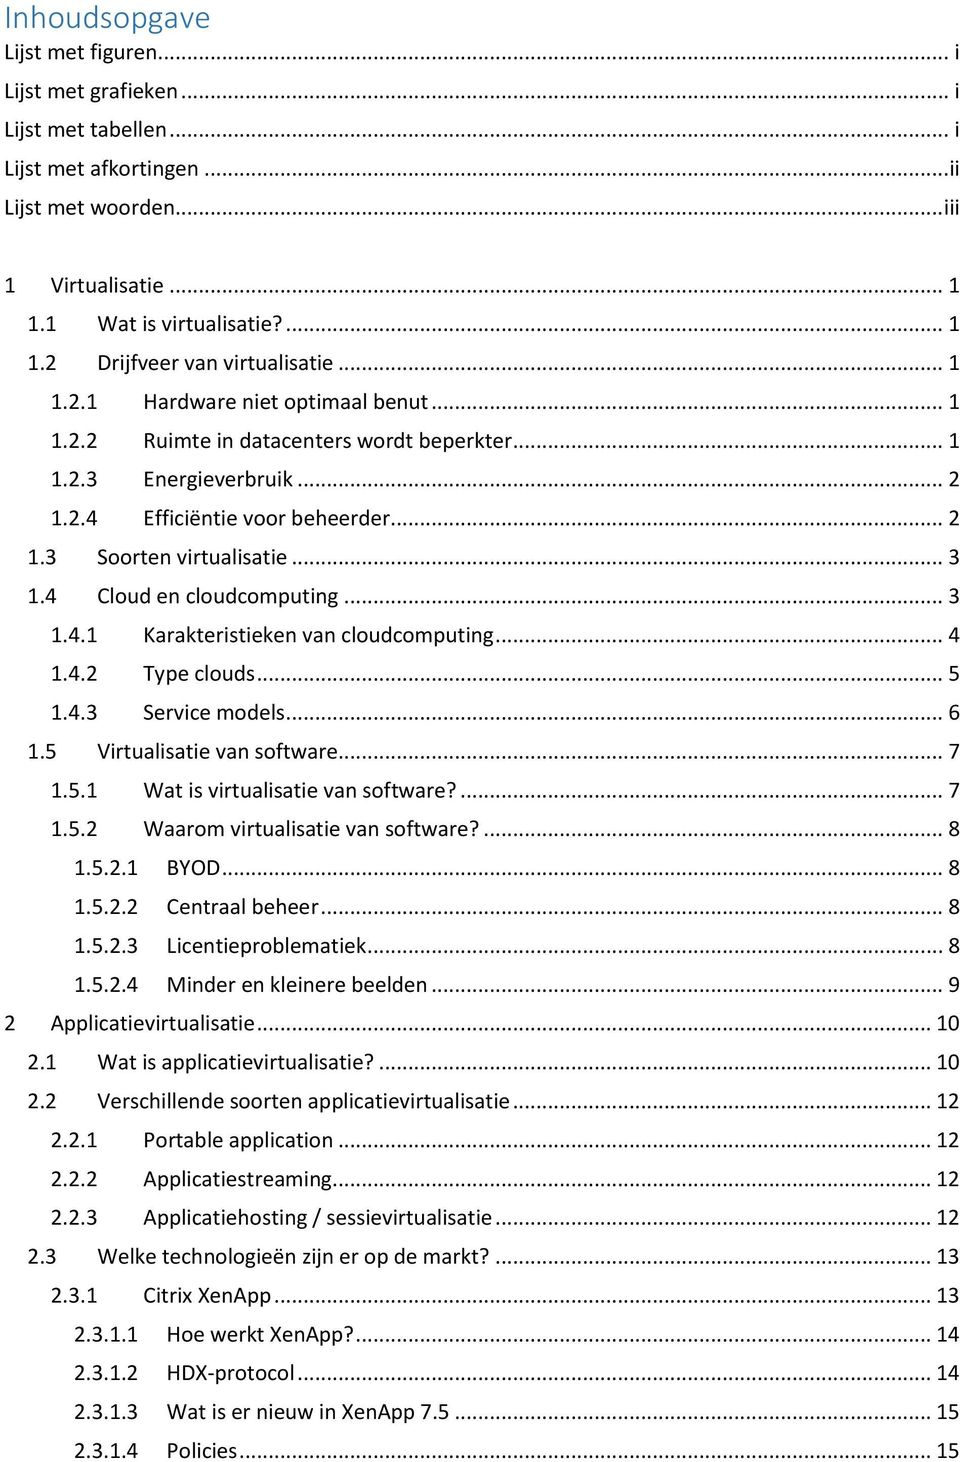 4 Cloud en cloudcomputing... 3 1.4.1 Karakteristieken van cloudcomputing... 4 1.4.2 Type clouds... 5 1.4.3 Service models... 6 1.5 Virtualisatie van software... 7 1.5.1 Wat is virtualisatie van software?